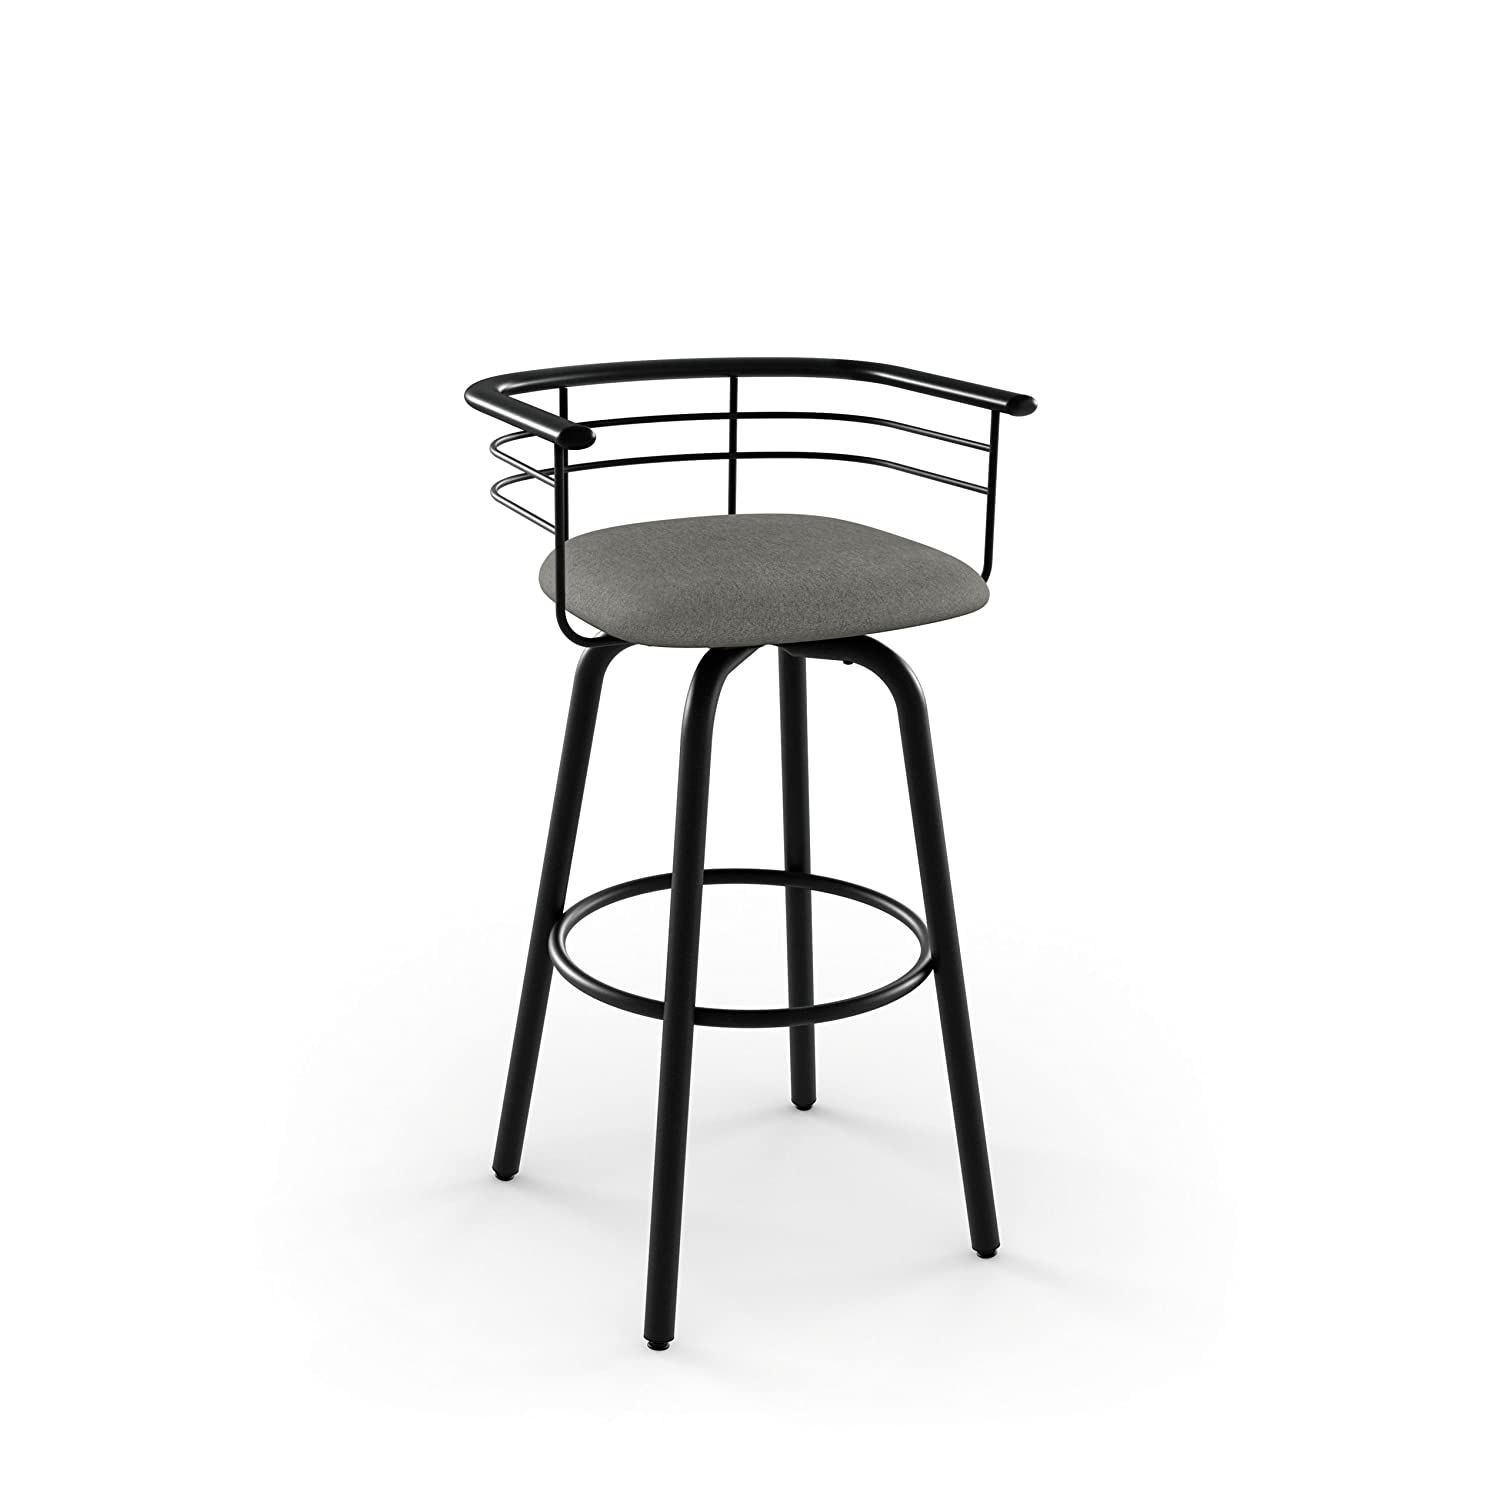 Superb Amisco Turbo Swivel Metal Counter Stool In Textured Black Metal And Light Cold Grey Polyester Gmtry Best Dining Table And Chair Ideas Images Gmtryco